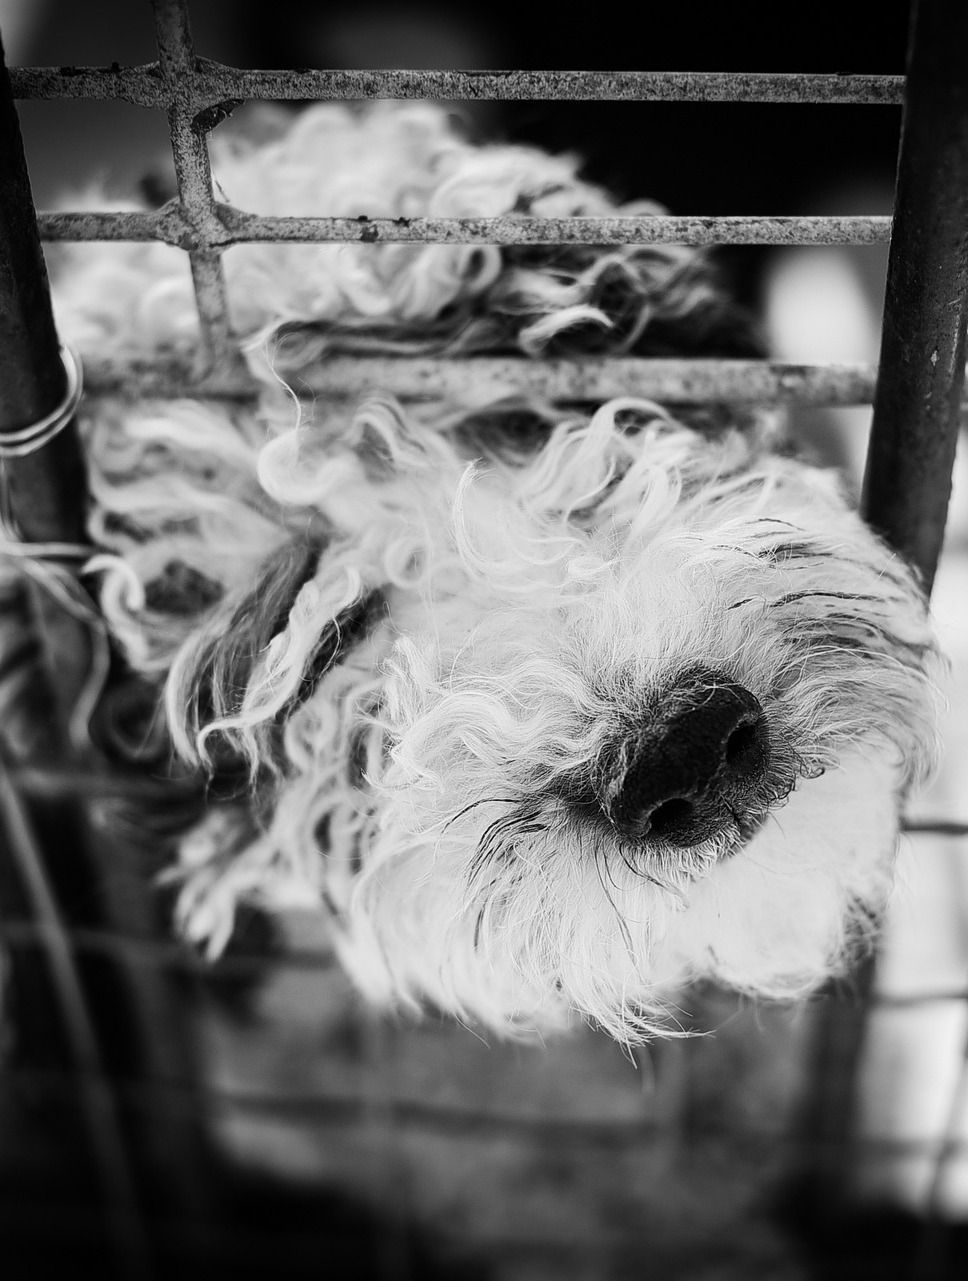 How To Avoid Buying From a Puppy Mill